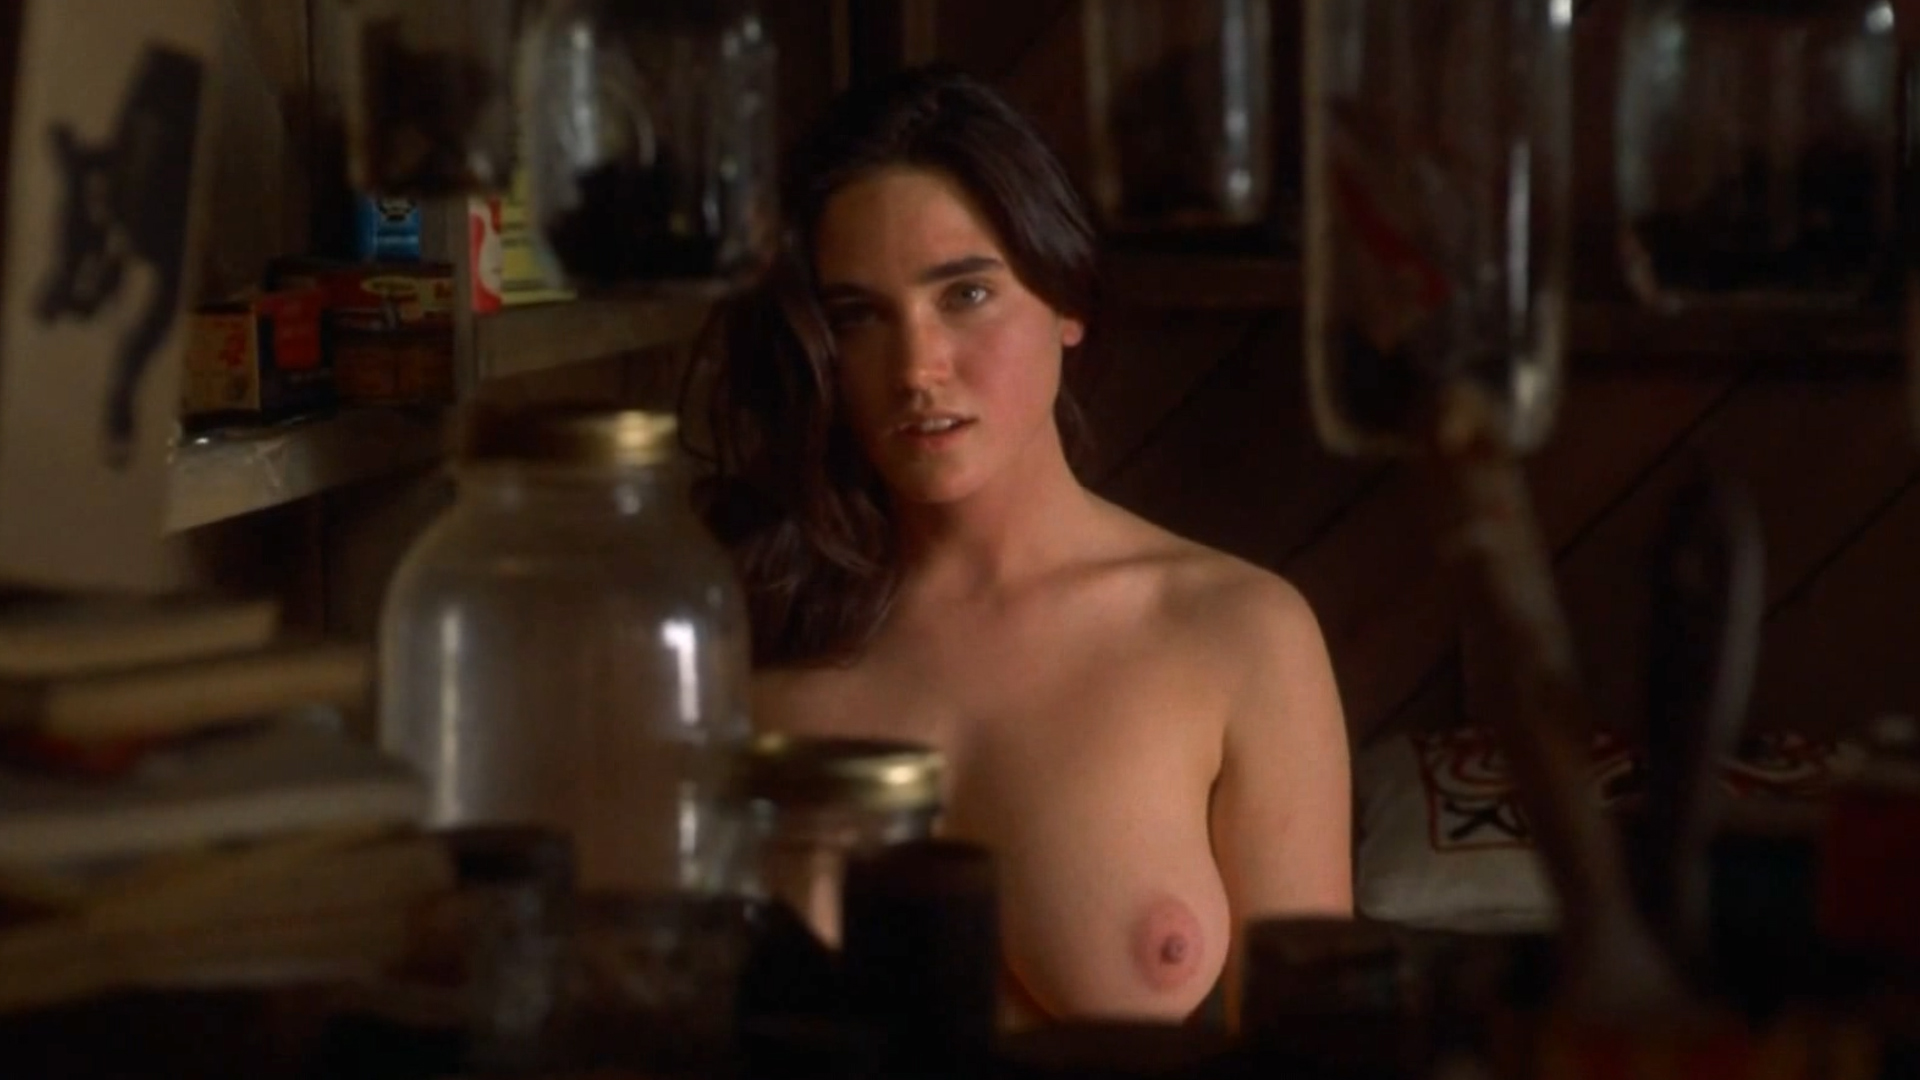 Jennifer connelly nude sex scenes